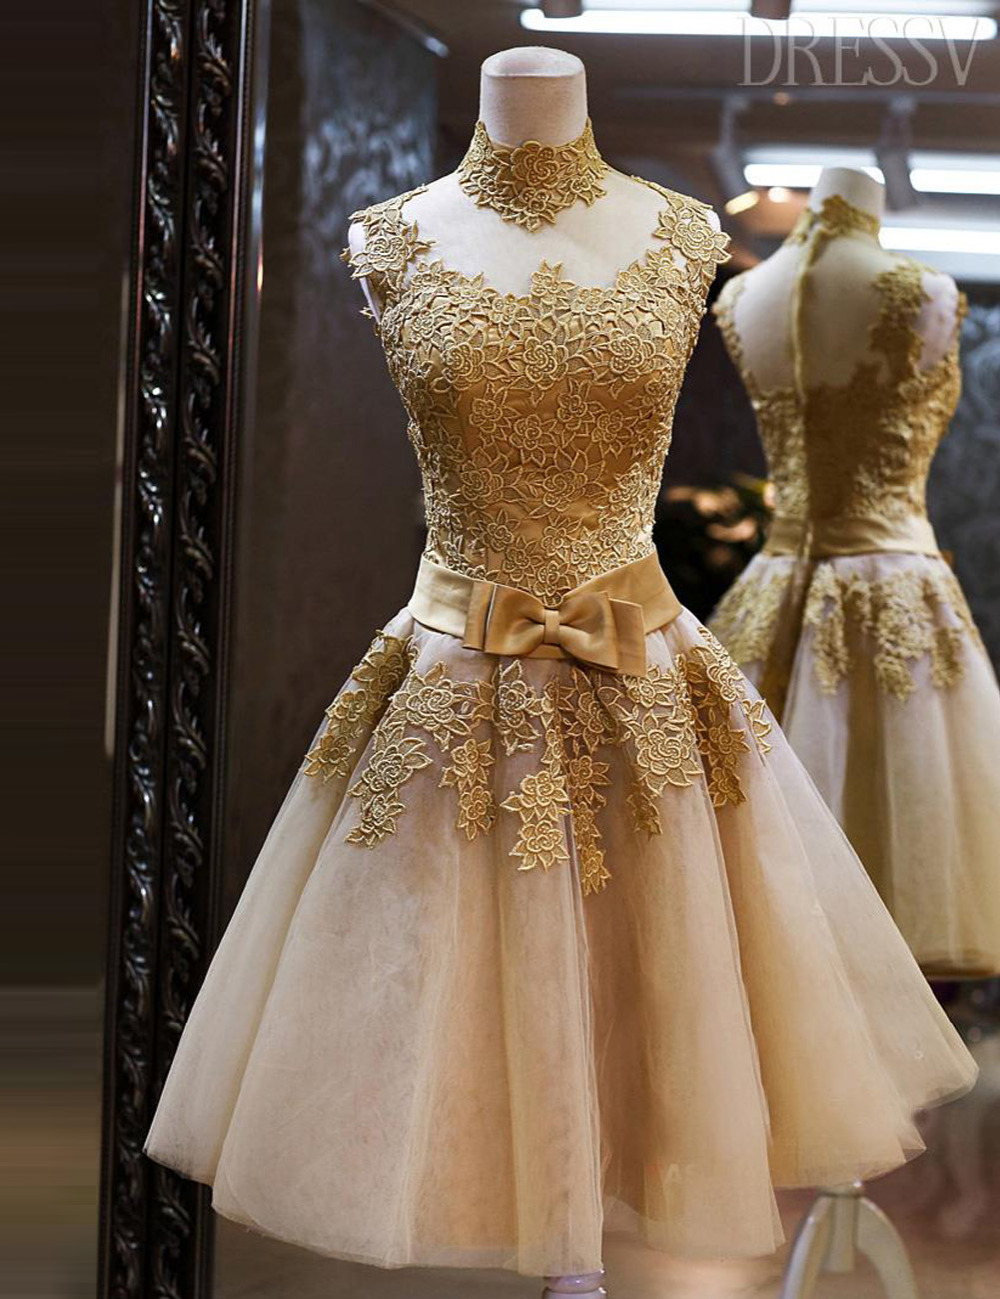 f9bb4c2d69 Champagne Short Homecoming Dresses With Sashes Lace Appliques Cute 8th  Grade Graduation Dresses Vestido de formatura curto S1508-in Homecoming  Dresses from ...